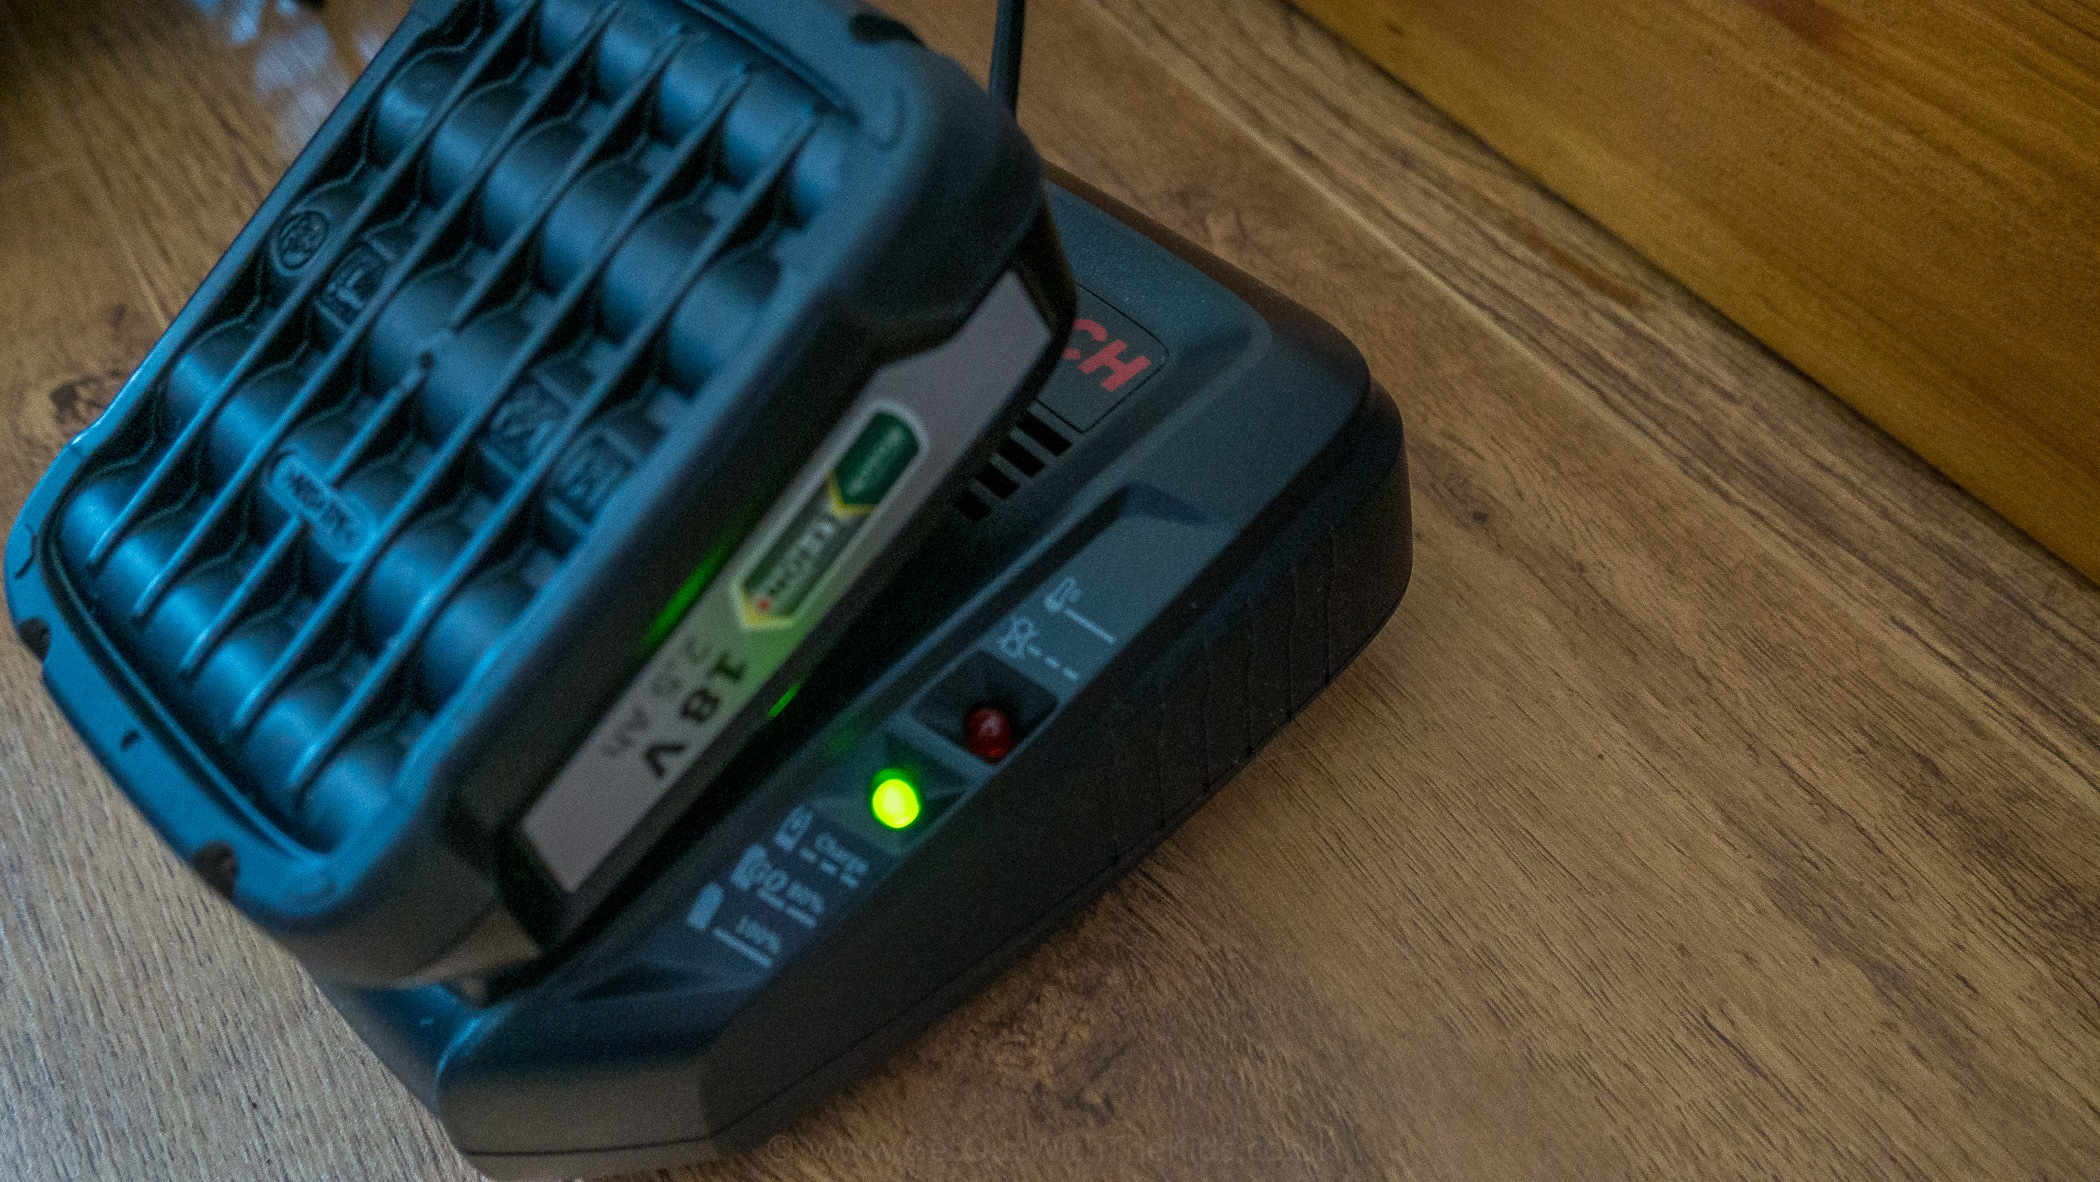 Charging the Bosch Fontus battery pack